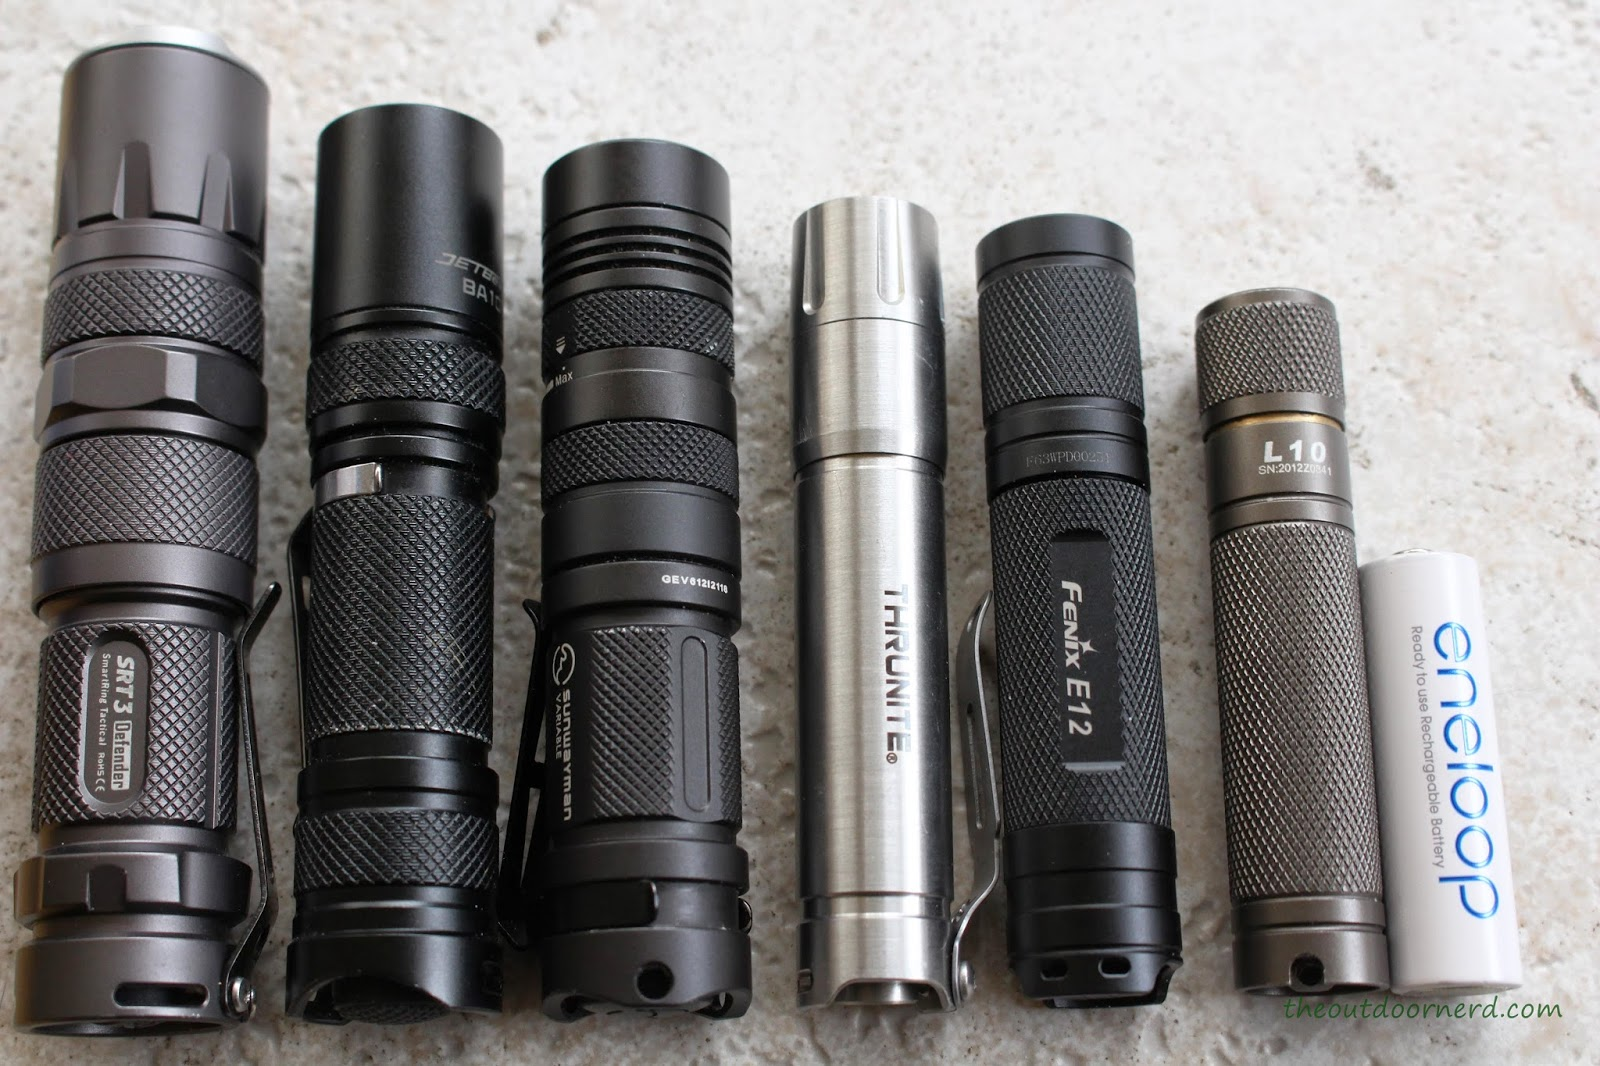 Fenix E12 1xAA EDC Flashlight With Friends